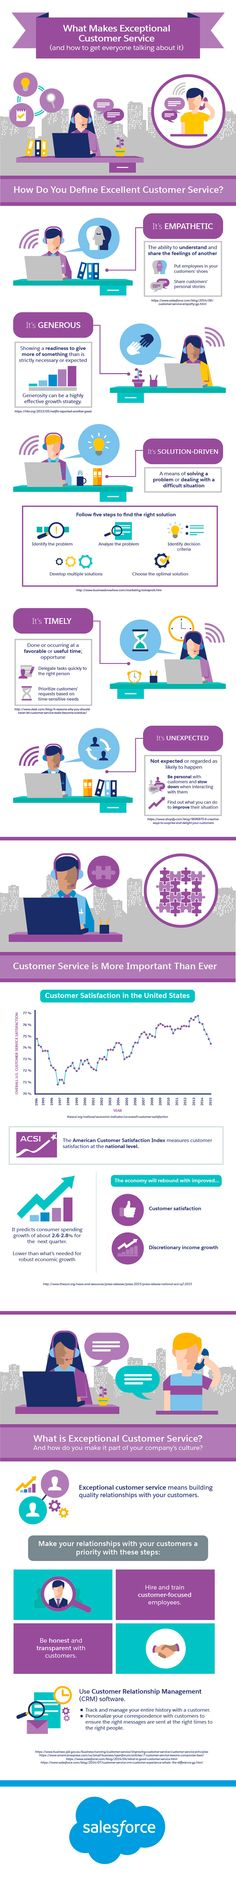 bg-close-img Salesforce Pinterest - how do you define excellent customer service